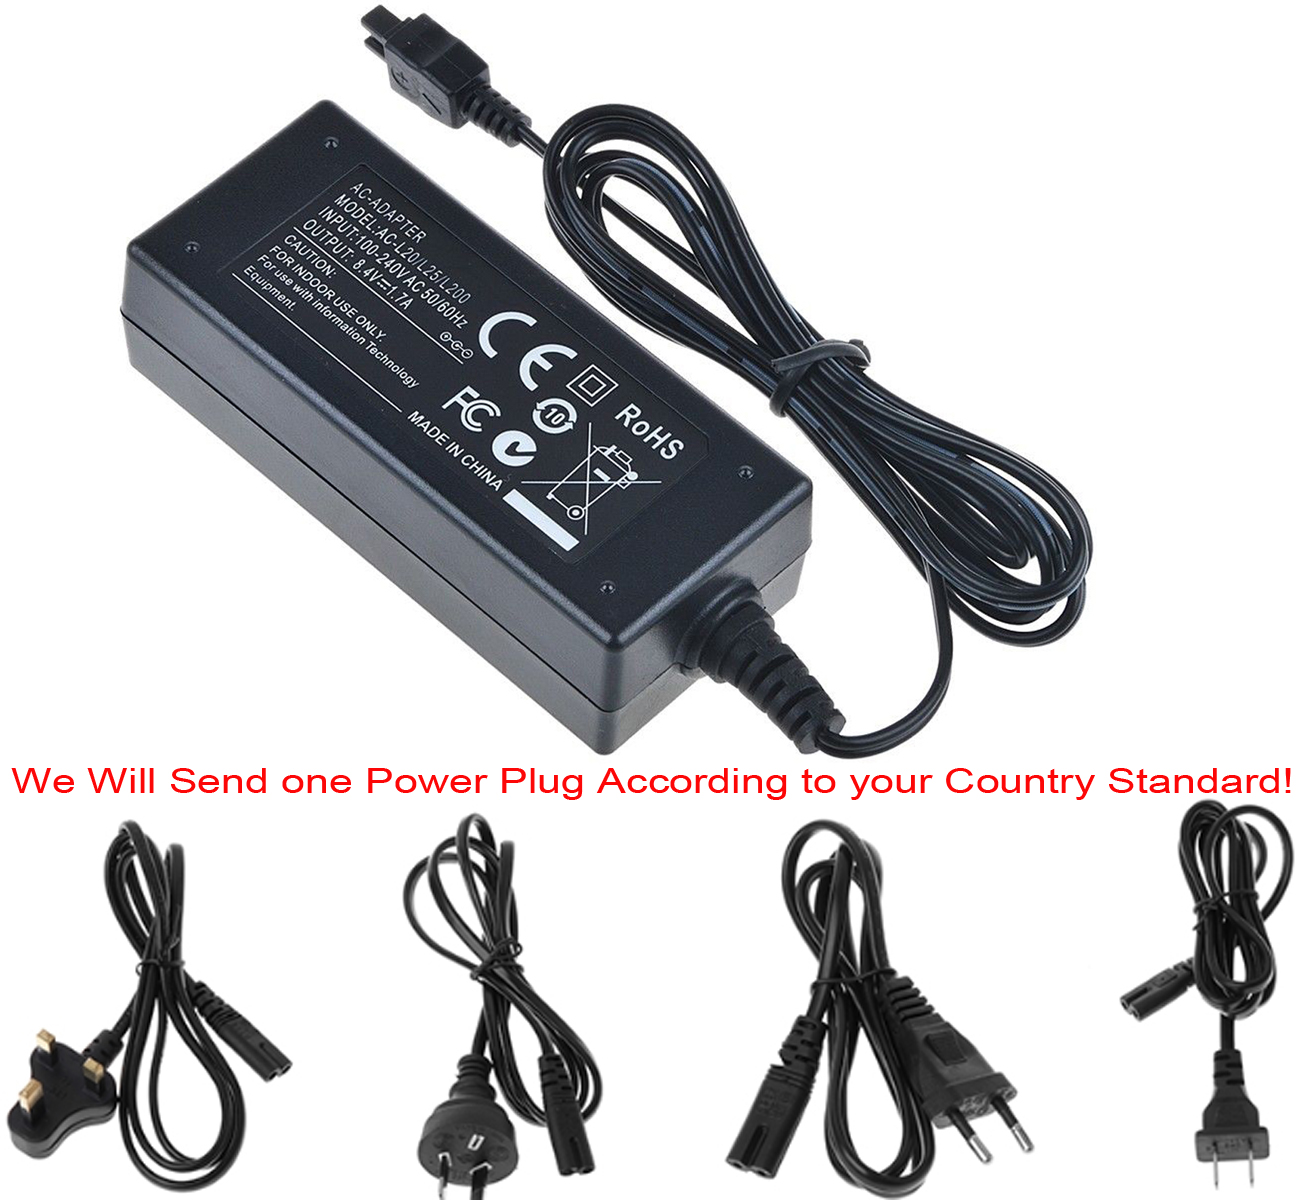 AC Power Adapter Charger for <font><b>Sony</b></font> HDR-CX100, HDR-CX105, HDR-CX106, HDR-<font><b>CX110</b></font>, HDR-CX115, HDR-CX116 Handycam Camcorder image